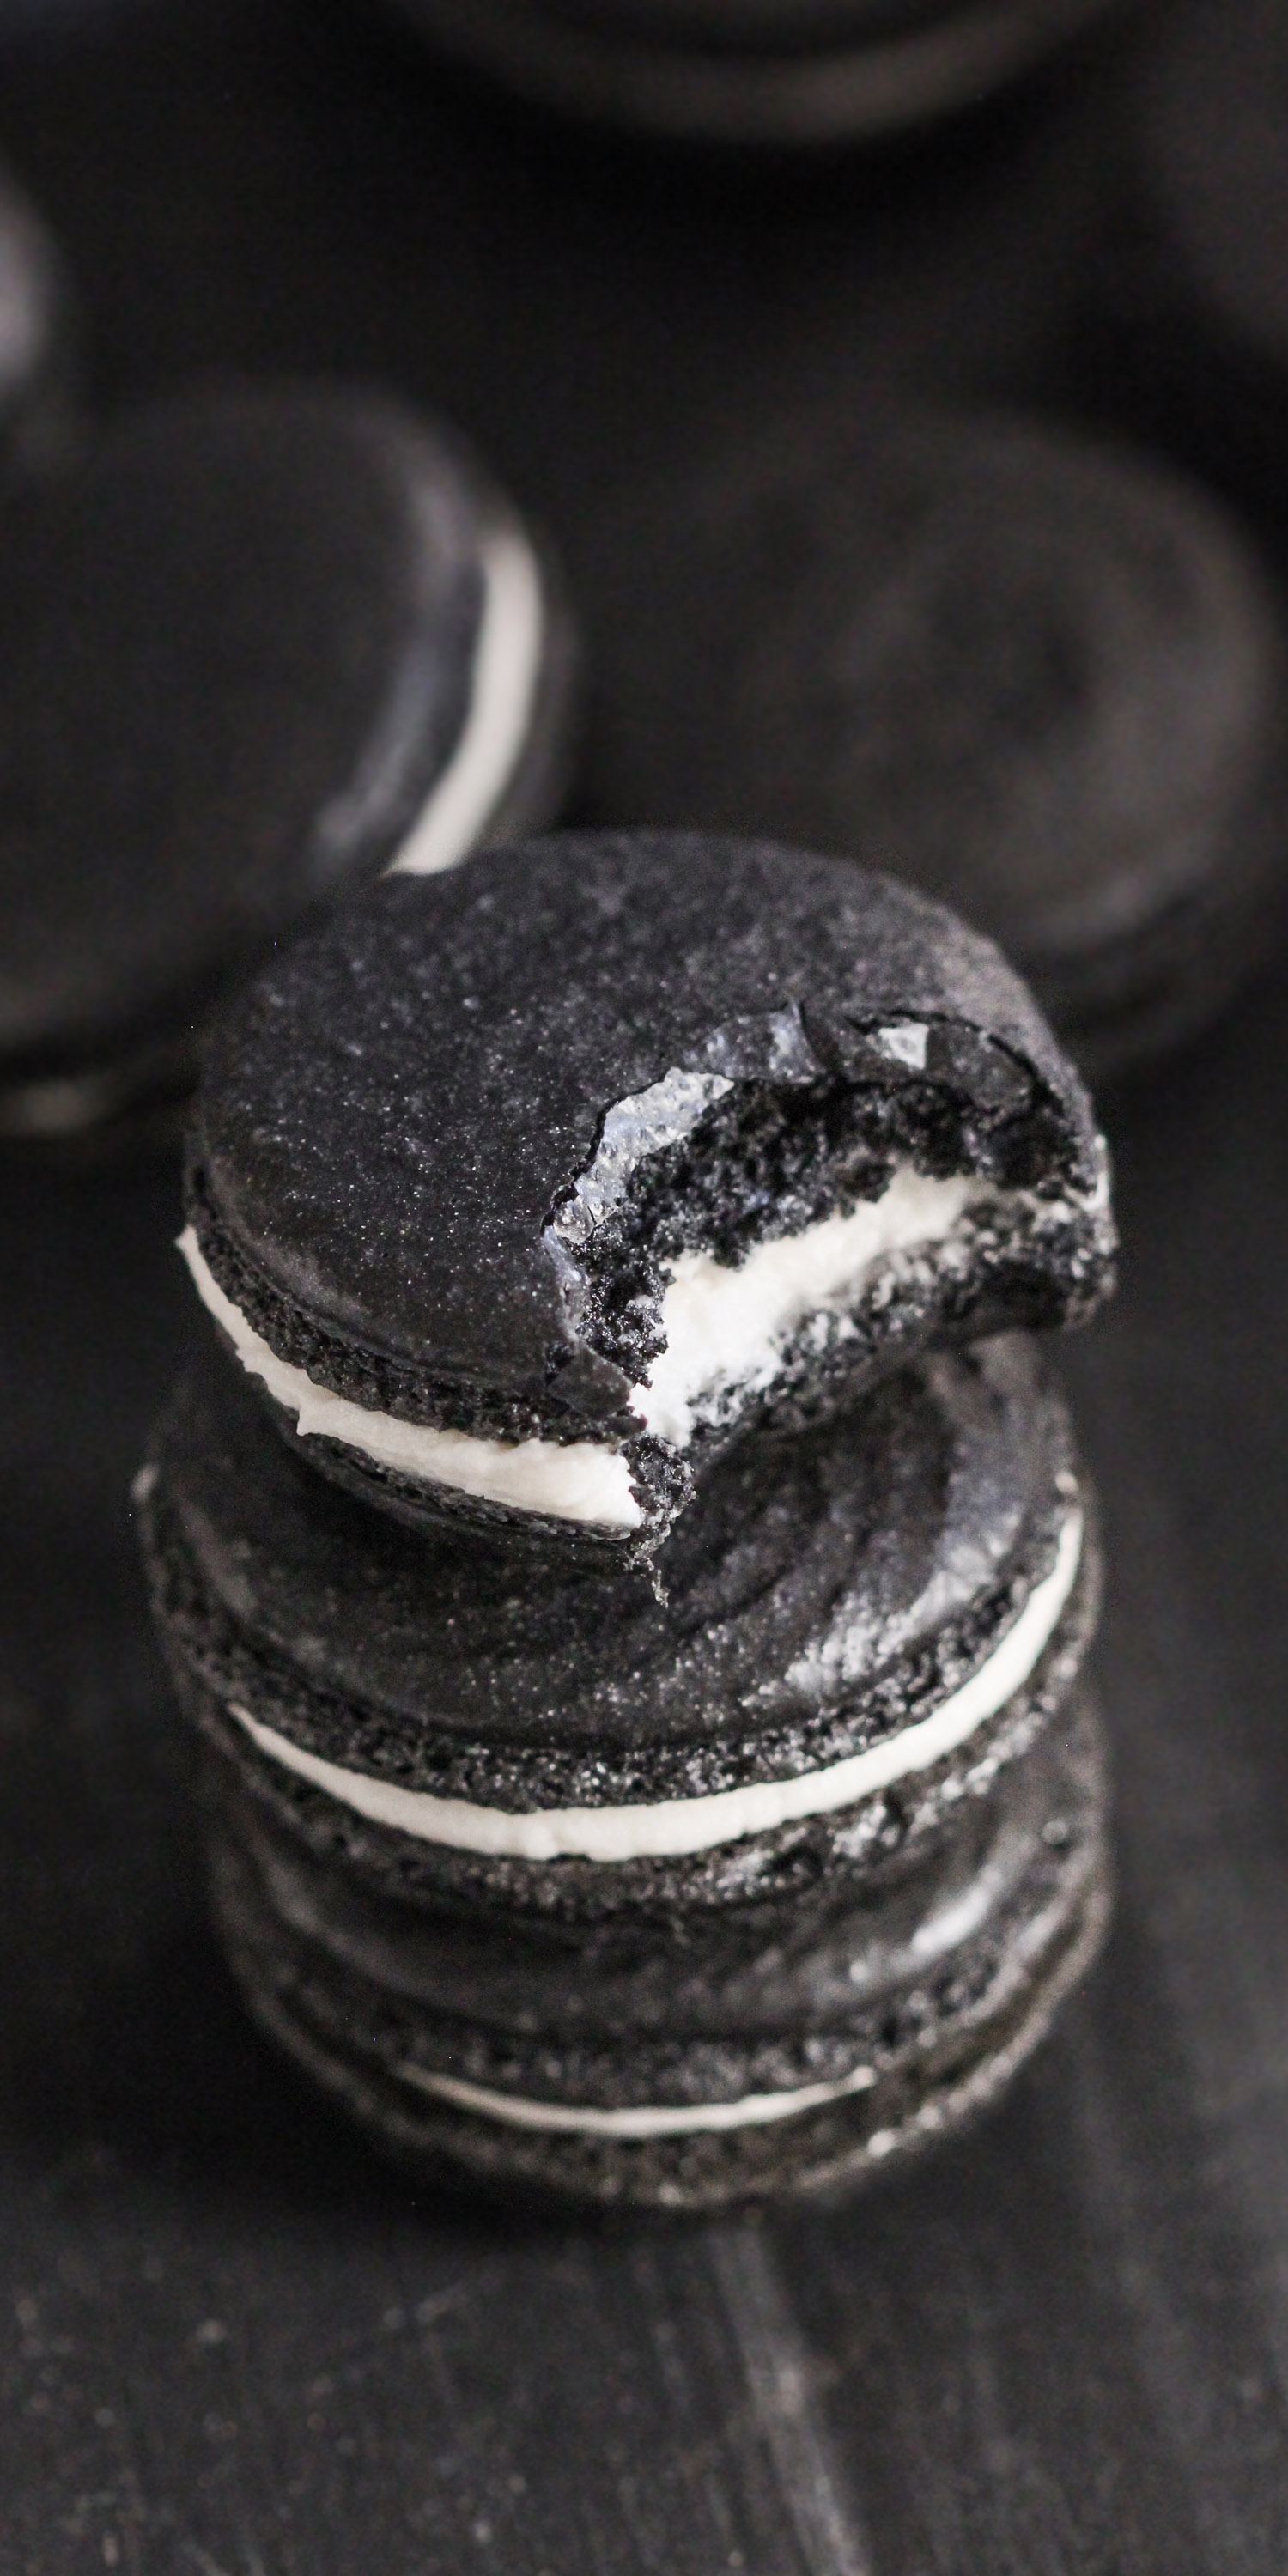 How to make GOTHIC MACARONS infused with chocolate and a secret ingredient! These Healthy Black Velvet French Macarons are just as sweet and delicious as your typical macarons, except these are all natural (no artificial food dyes), low fat, gluten free, and made without the bleached white sugar. PERFECT for Halloween! Healthy Dessert Recipes at the Desserts With Benefits Blog (www.DessertsWithBenefits.com)